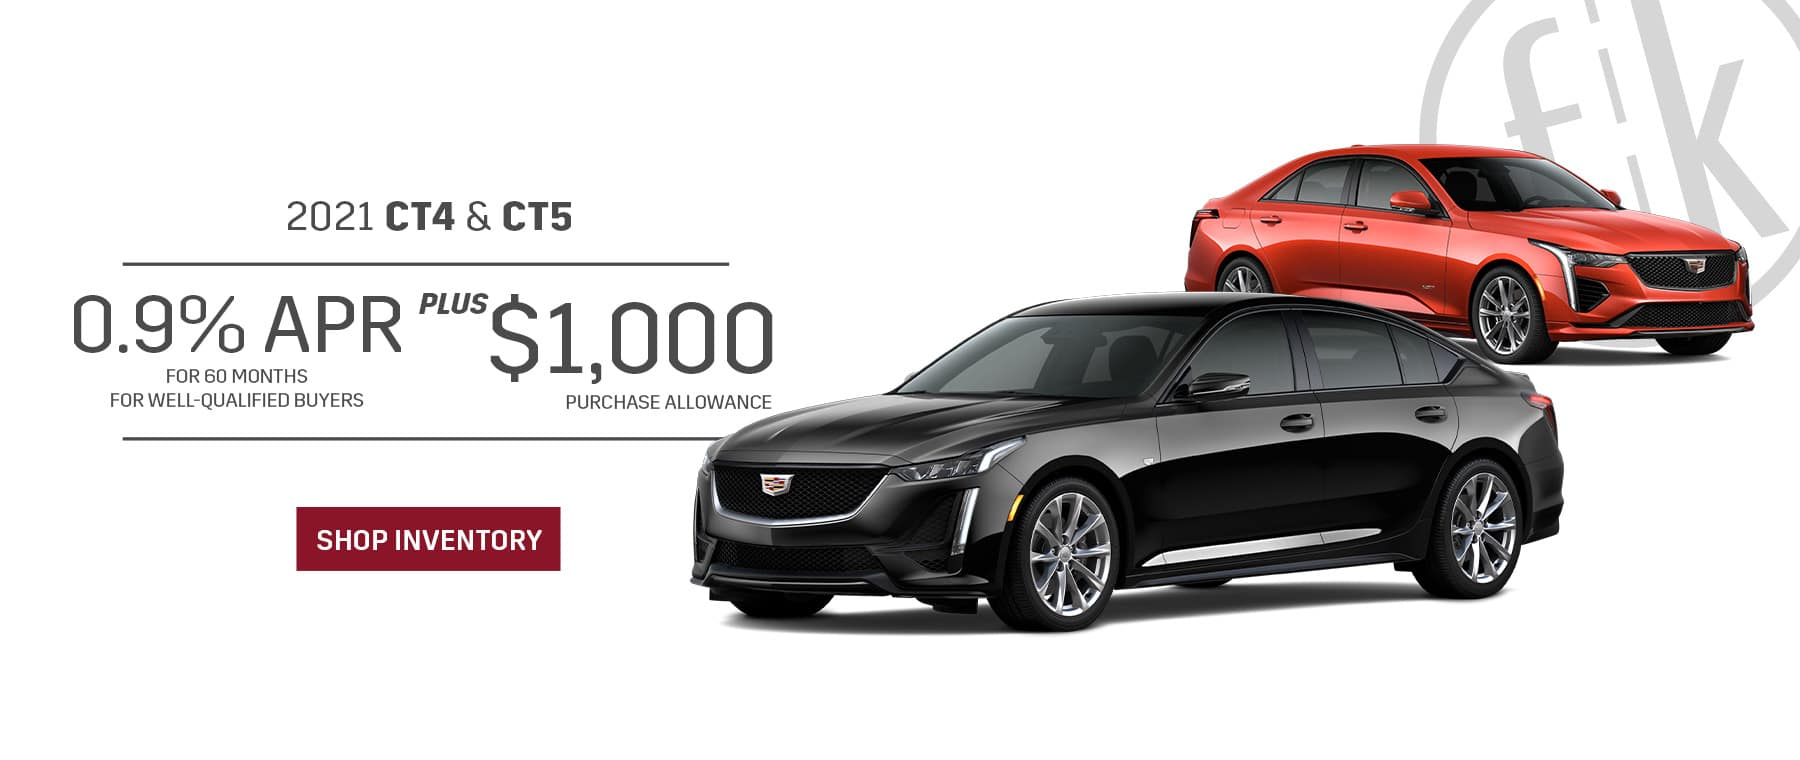 0.9% for 60 mos. PLUS $1,000 2021 CT4 & CT5